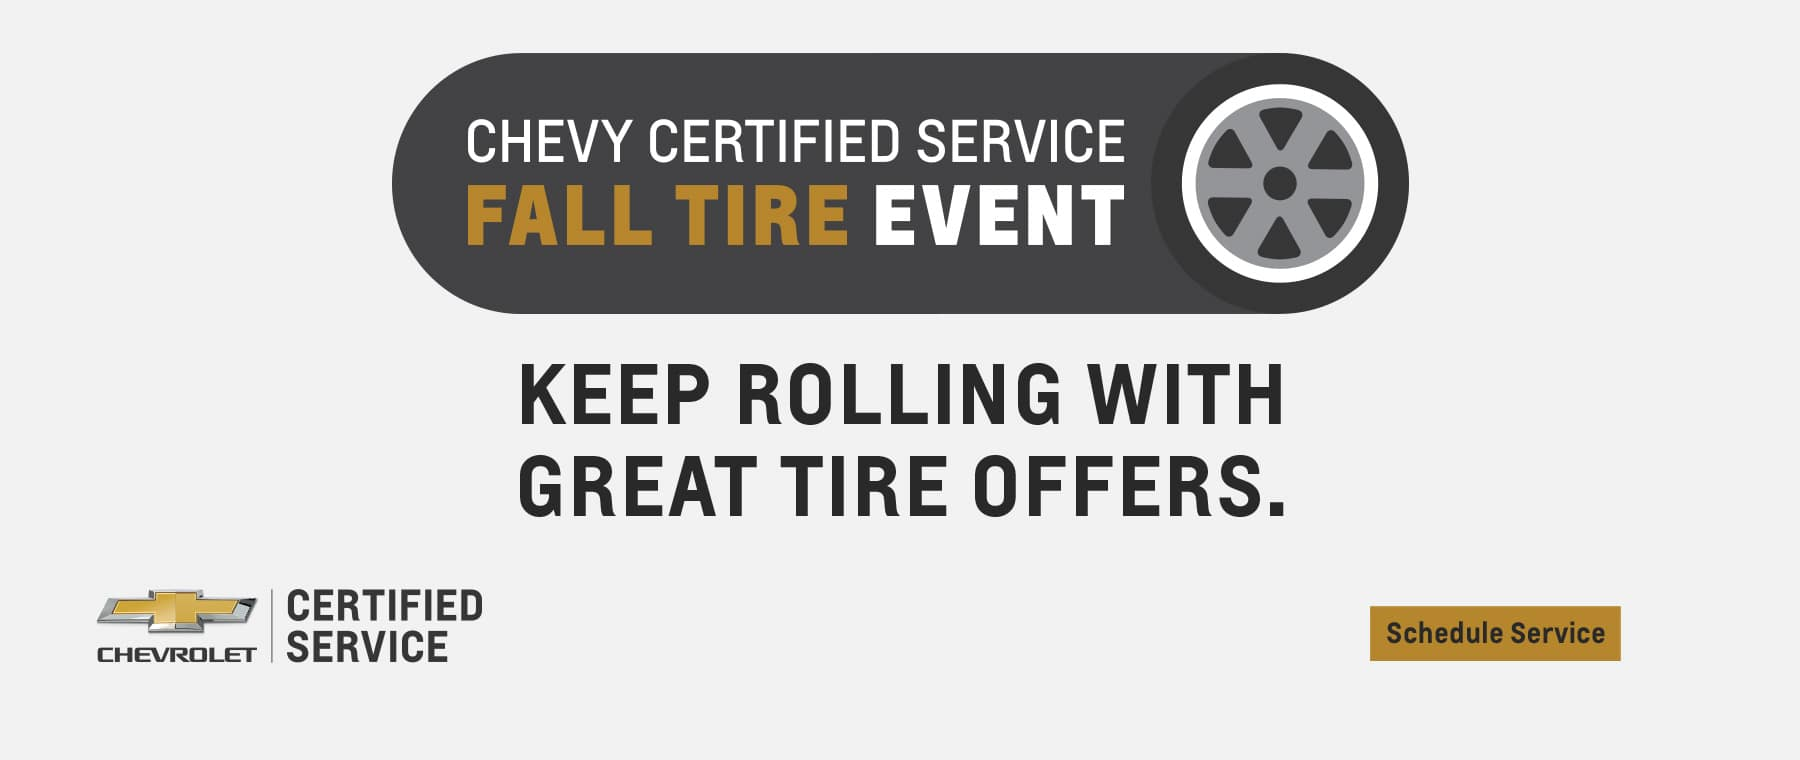 fall tire event